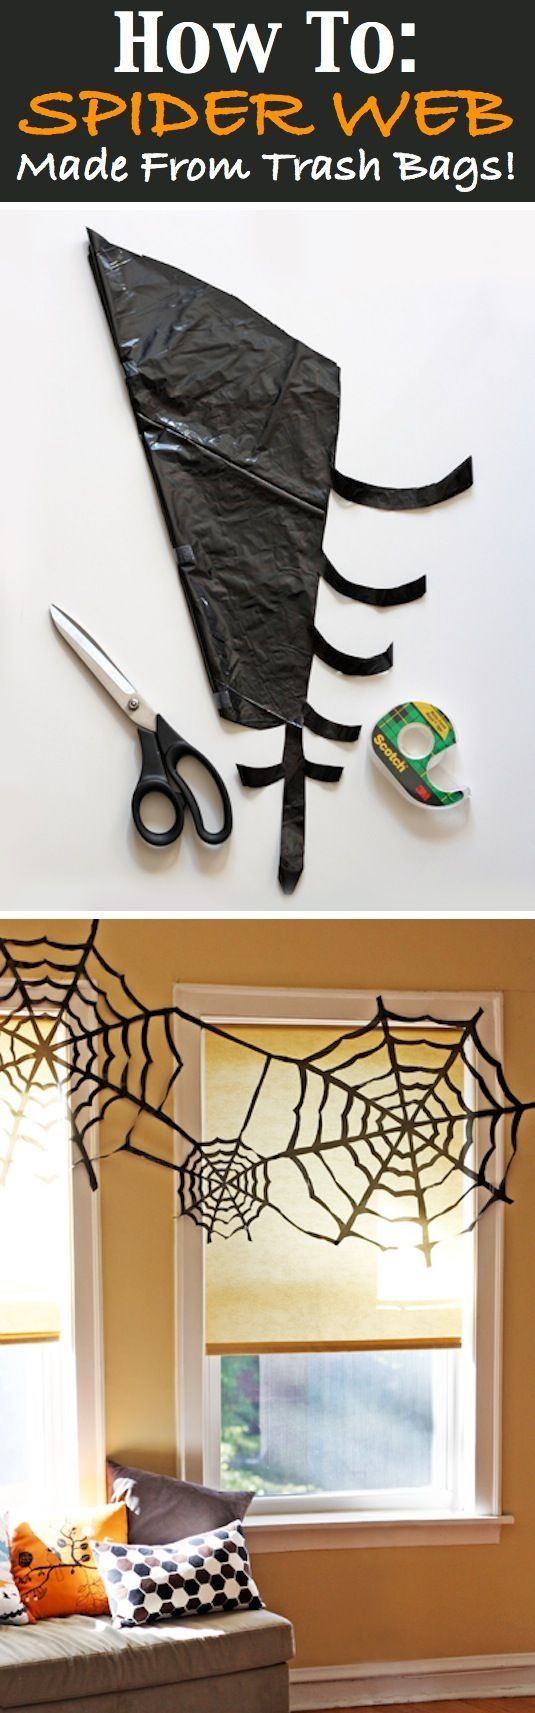 16 easy but awesome homemade halloween decorations by echkbet - Decoration For Halloween Ideas